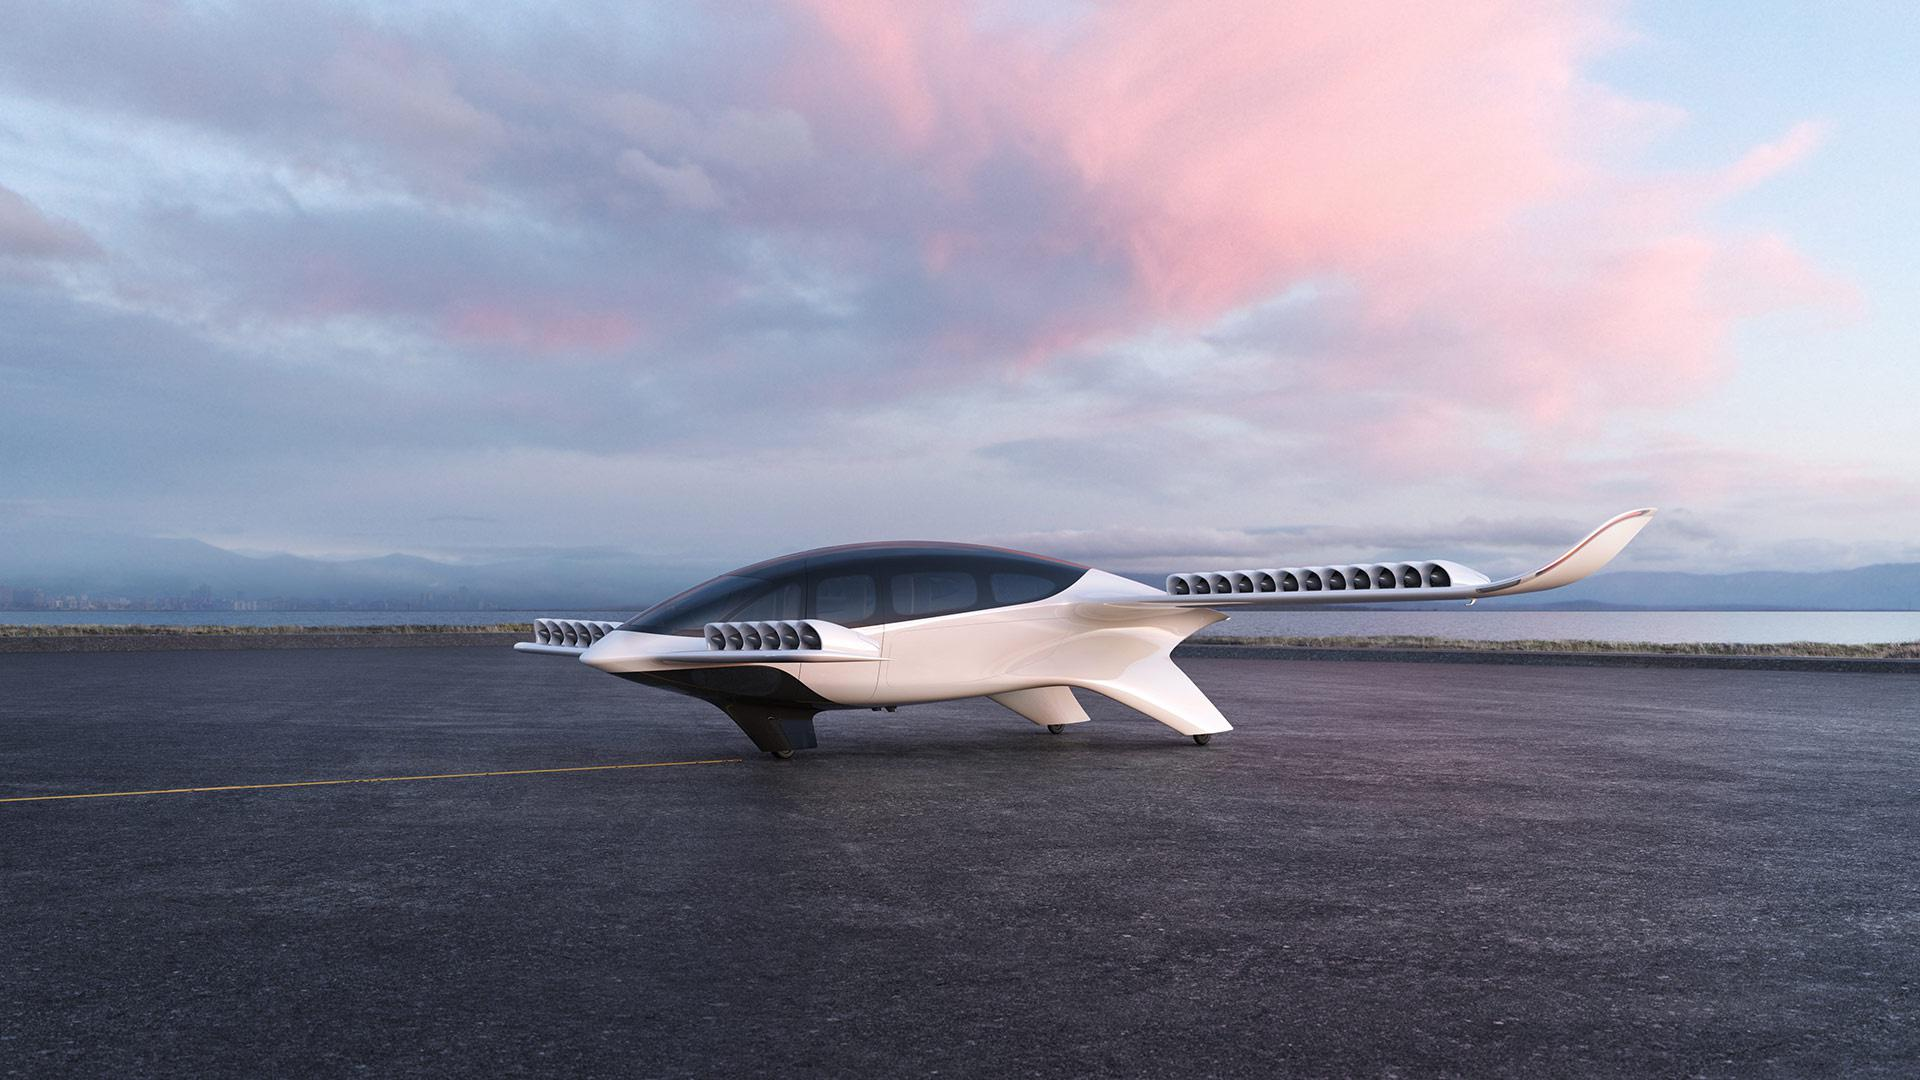 Lilium's unveiled a new seven seat version of its battery-powered air taxi